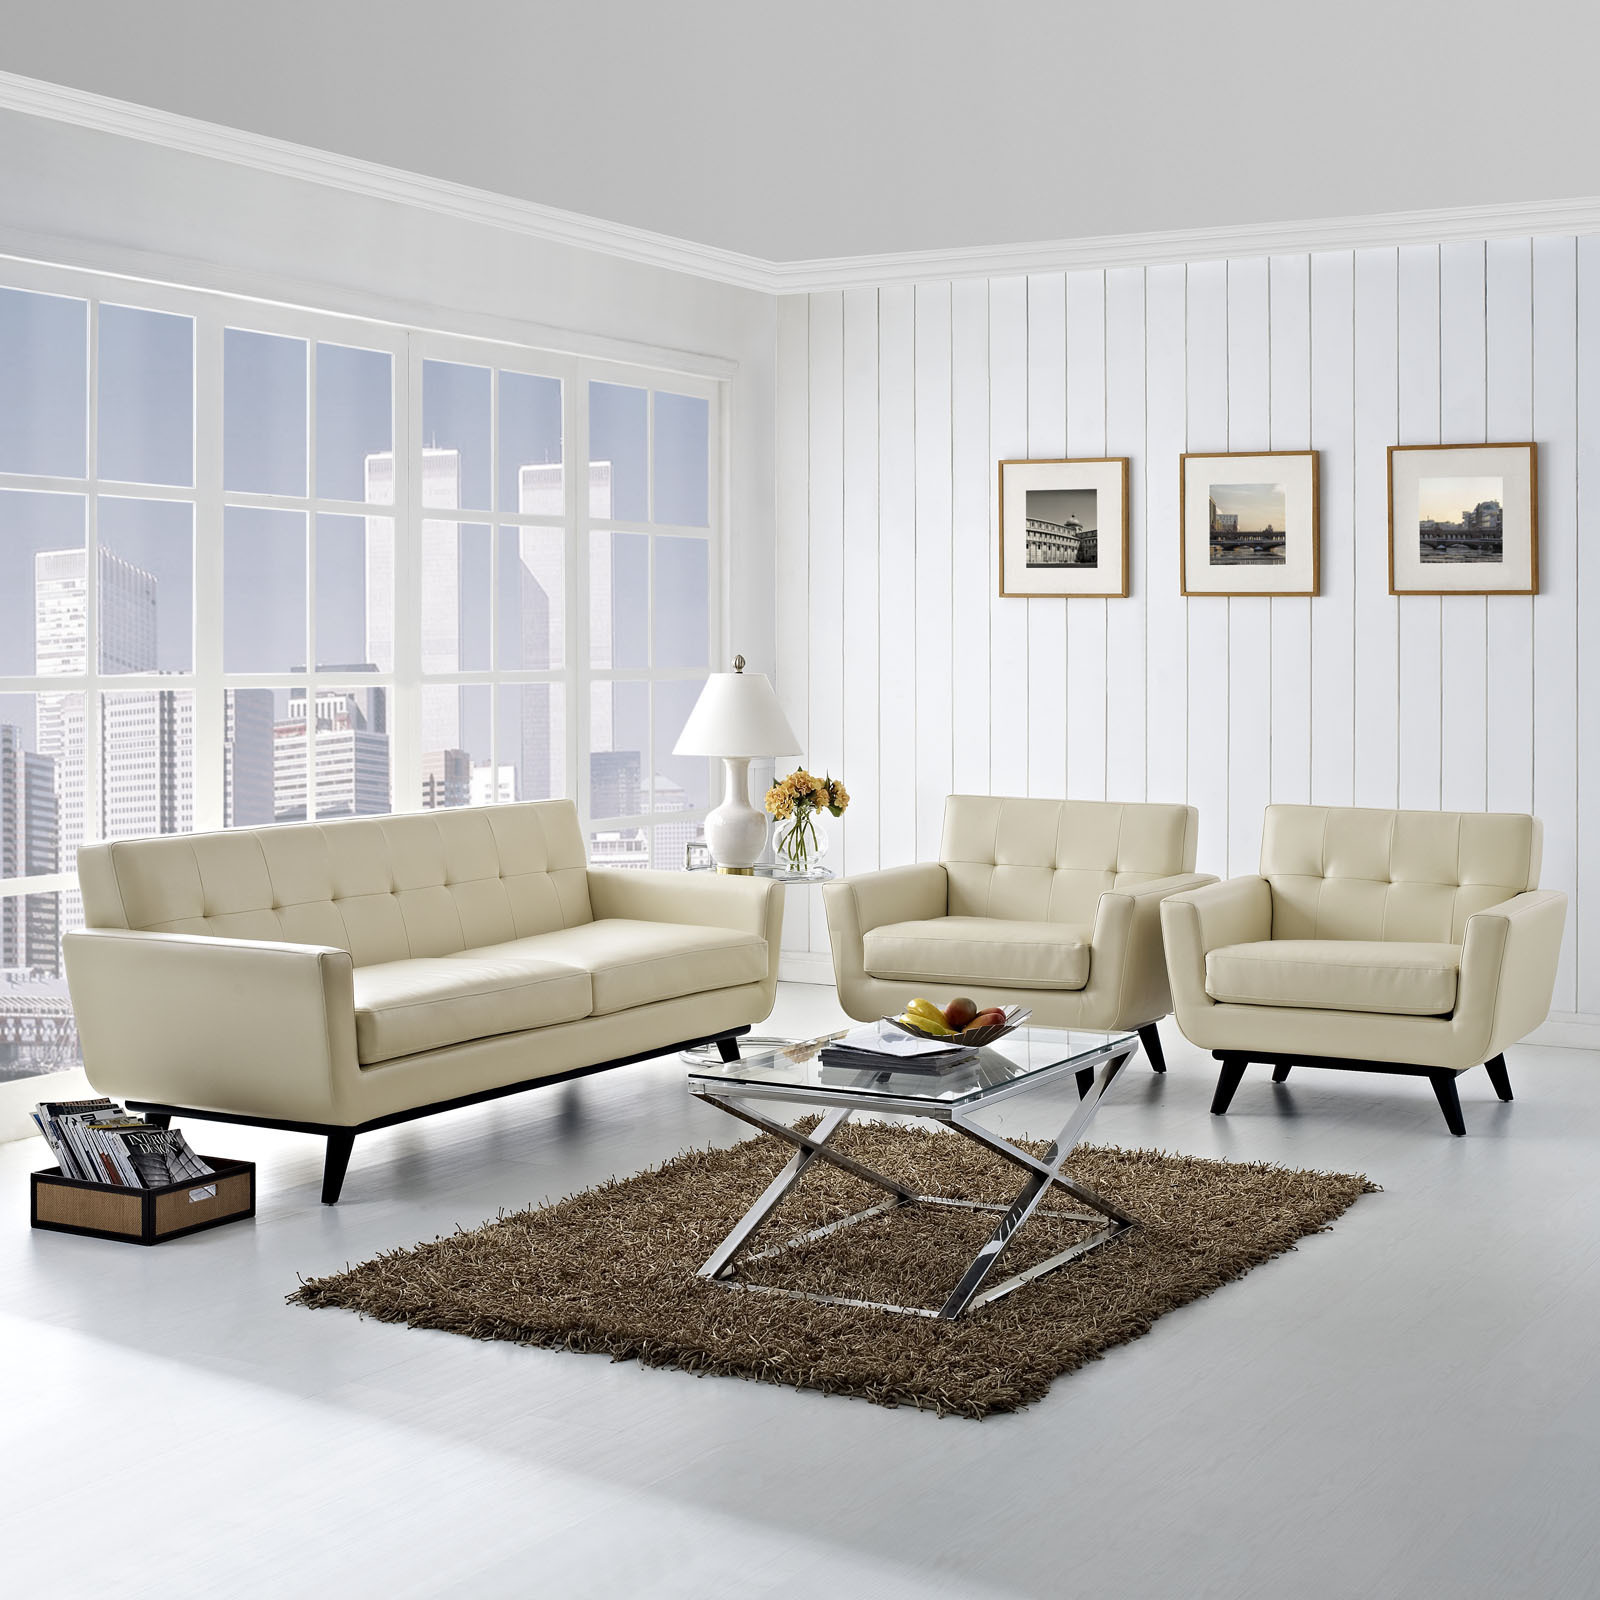 Shop Absorb 3-piece Leather Sofa and Armchairs Living Room Set - On ...